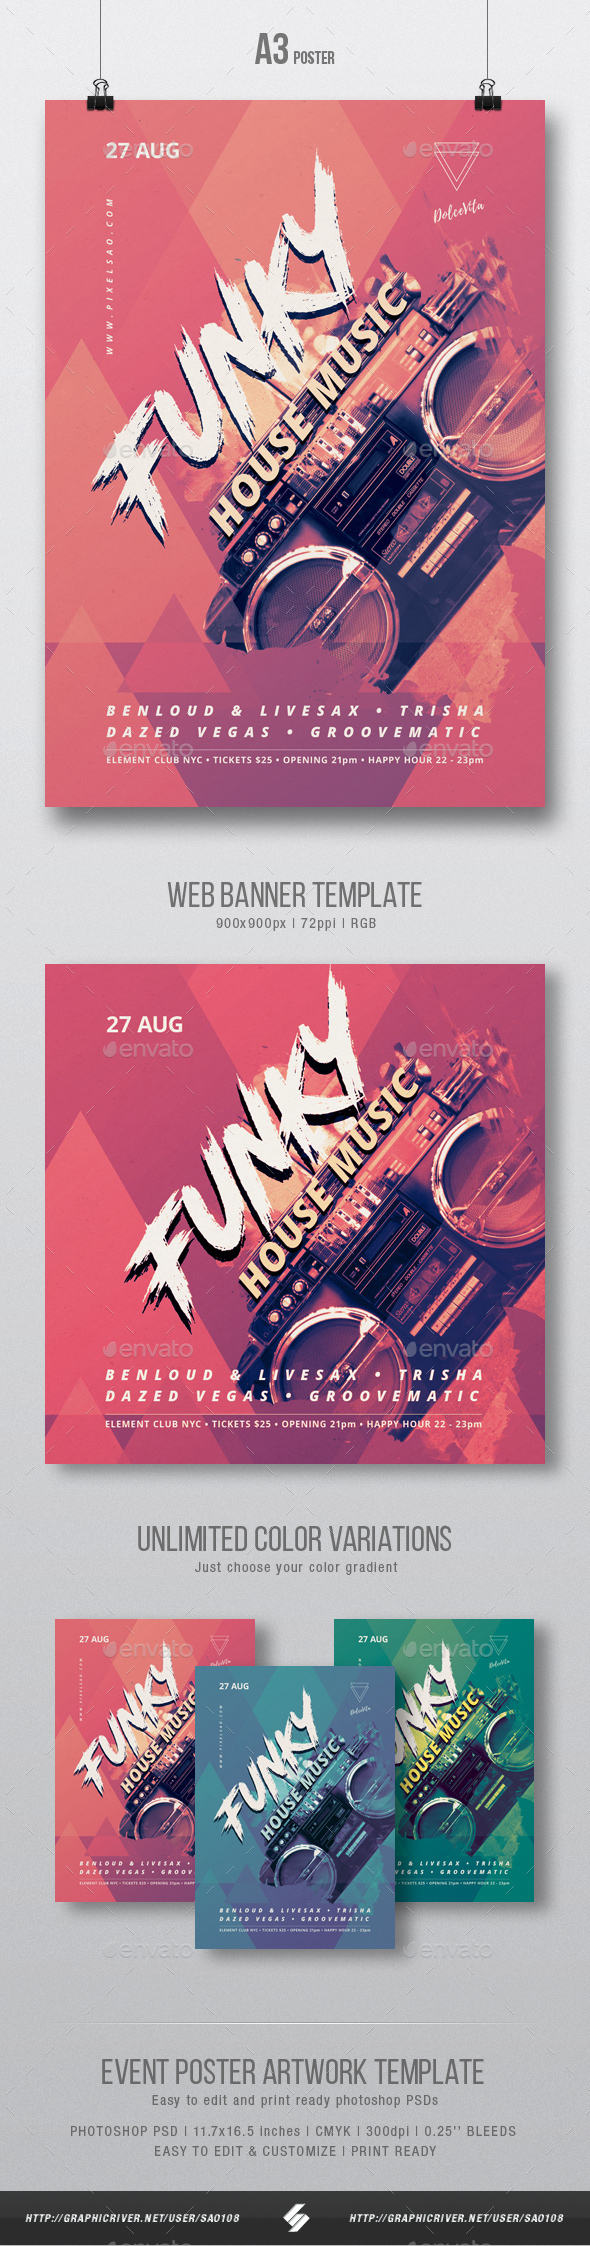 Funky House Music Party Flyer / Poster Template A3 - Clubs & Parties Events